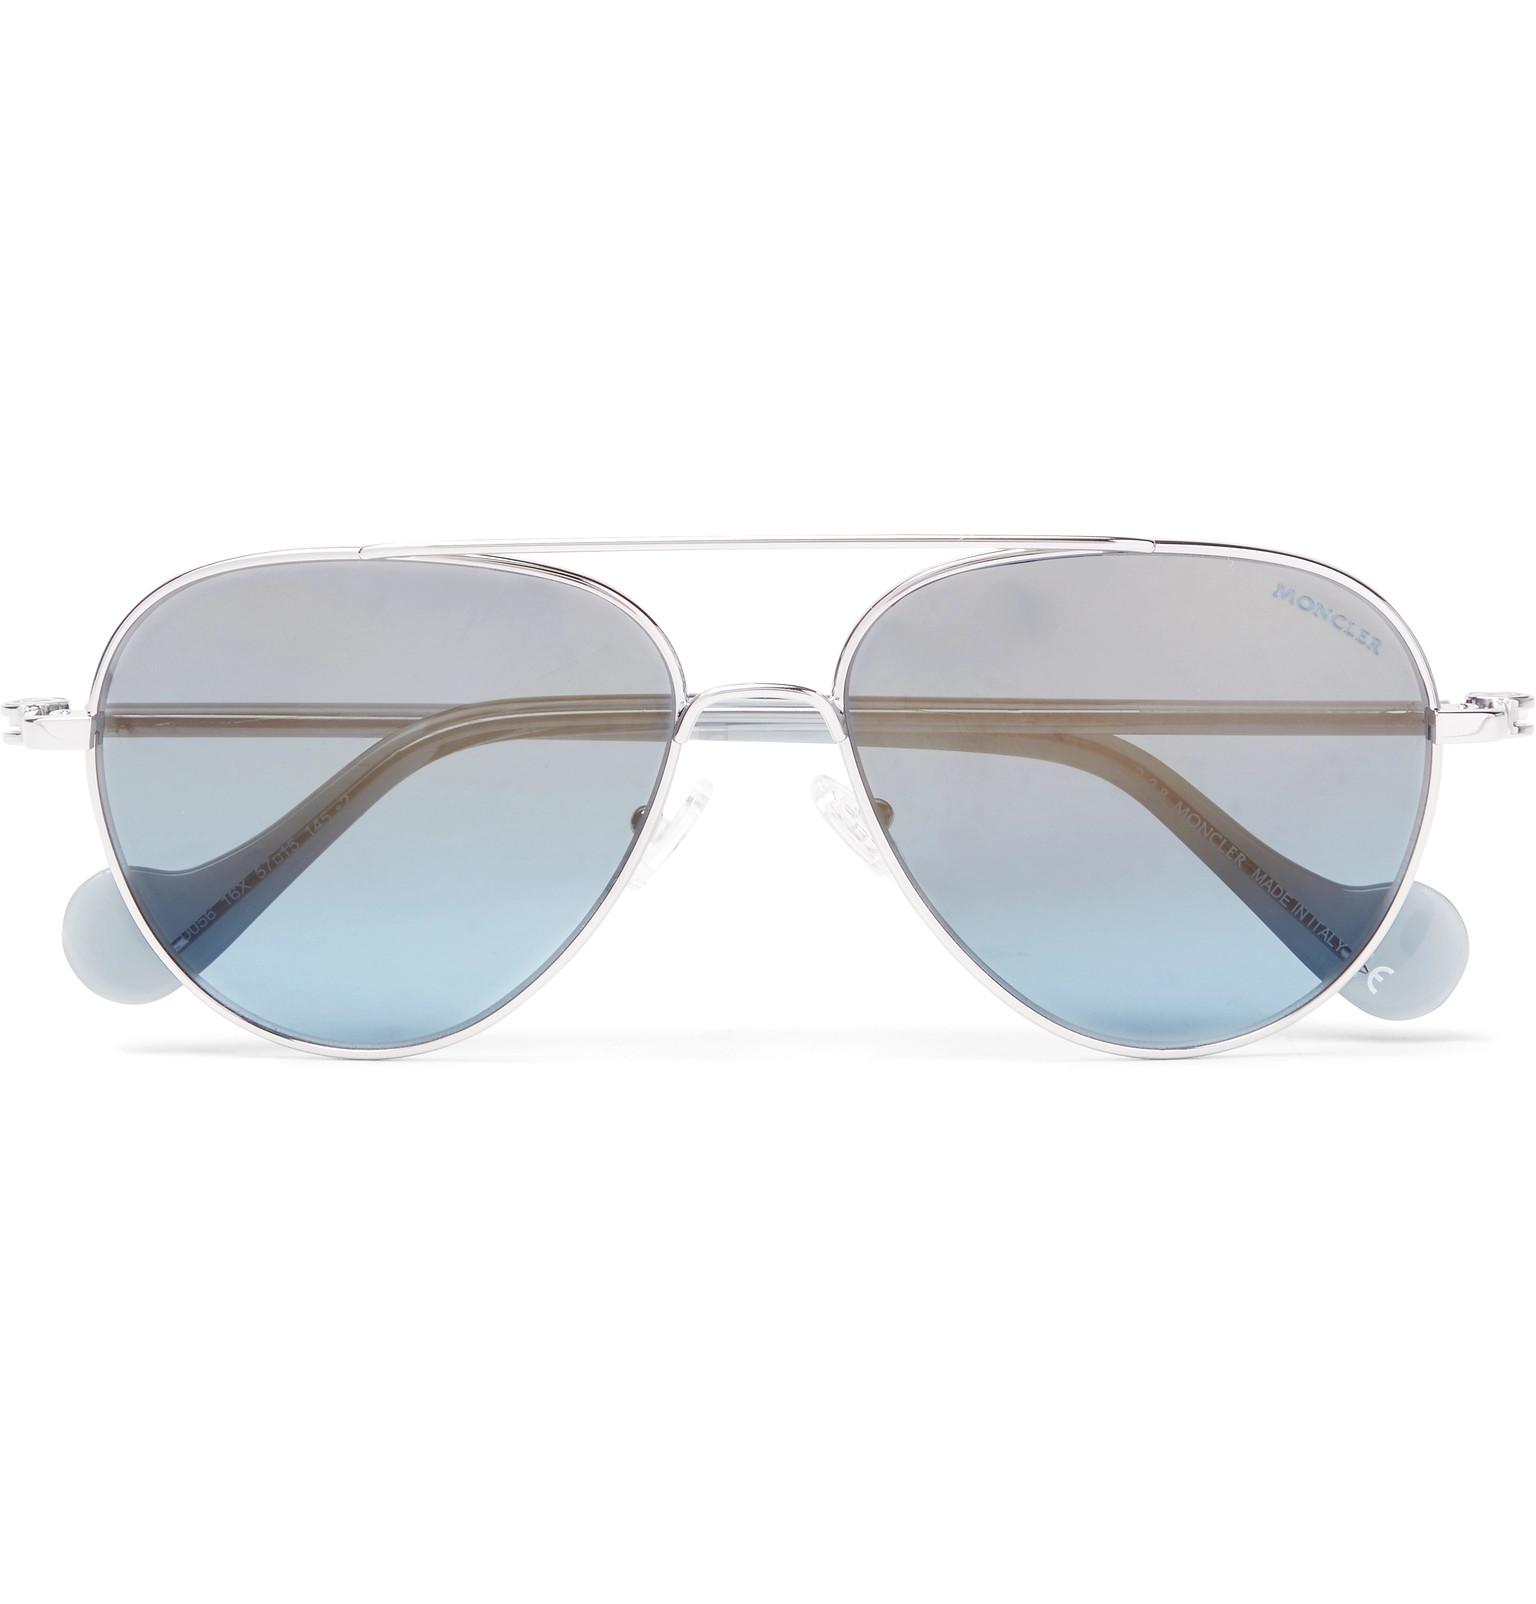 d0ea7a1a0d5f8 Moncler Aviator-style Palladium-plated Sunglasses in Blue for Men - Lyst